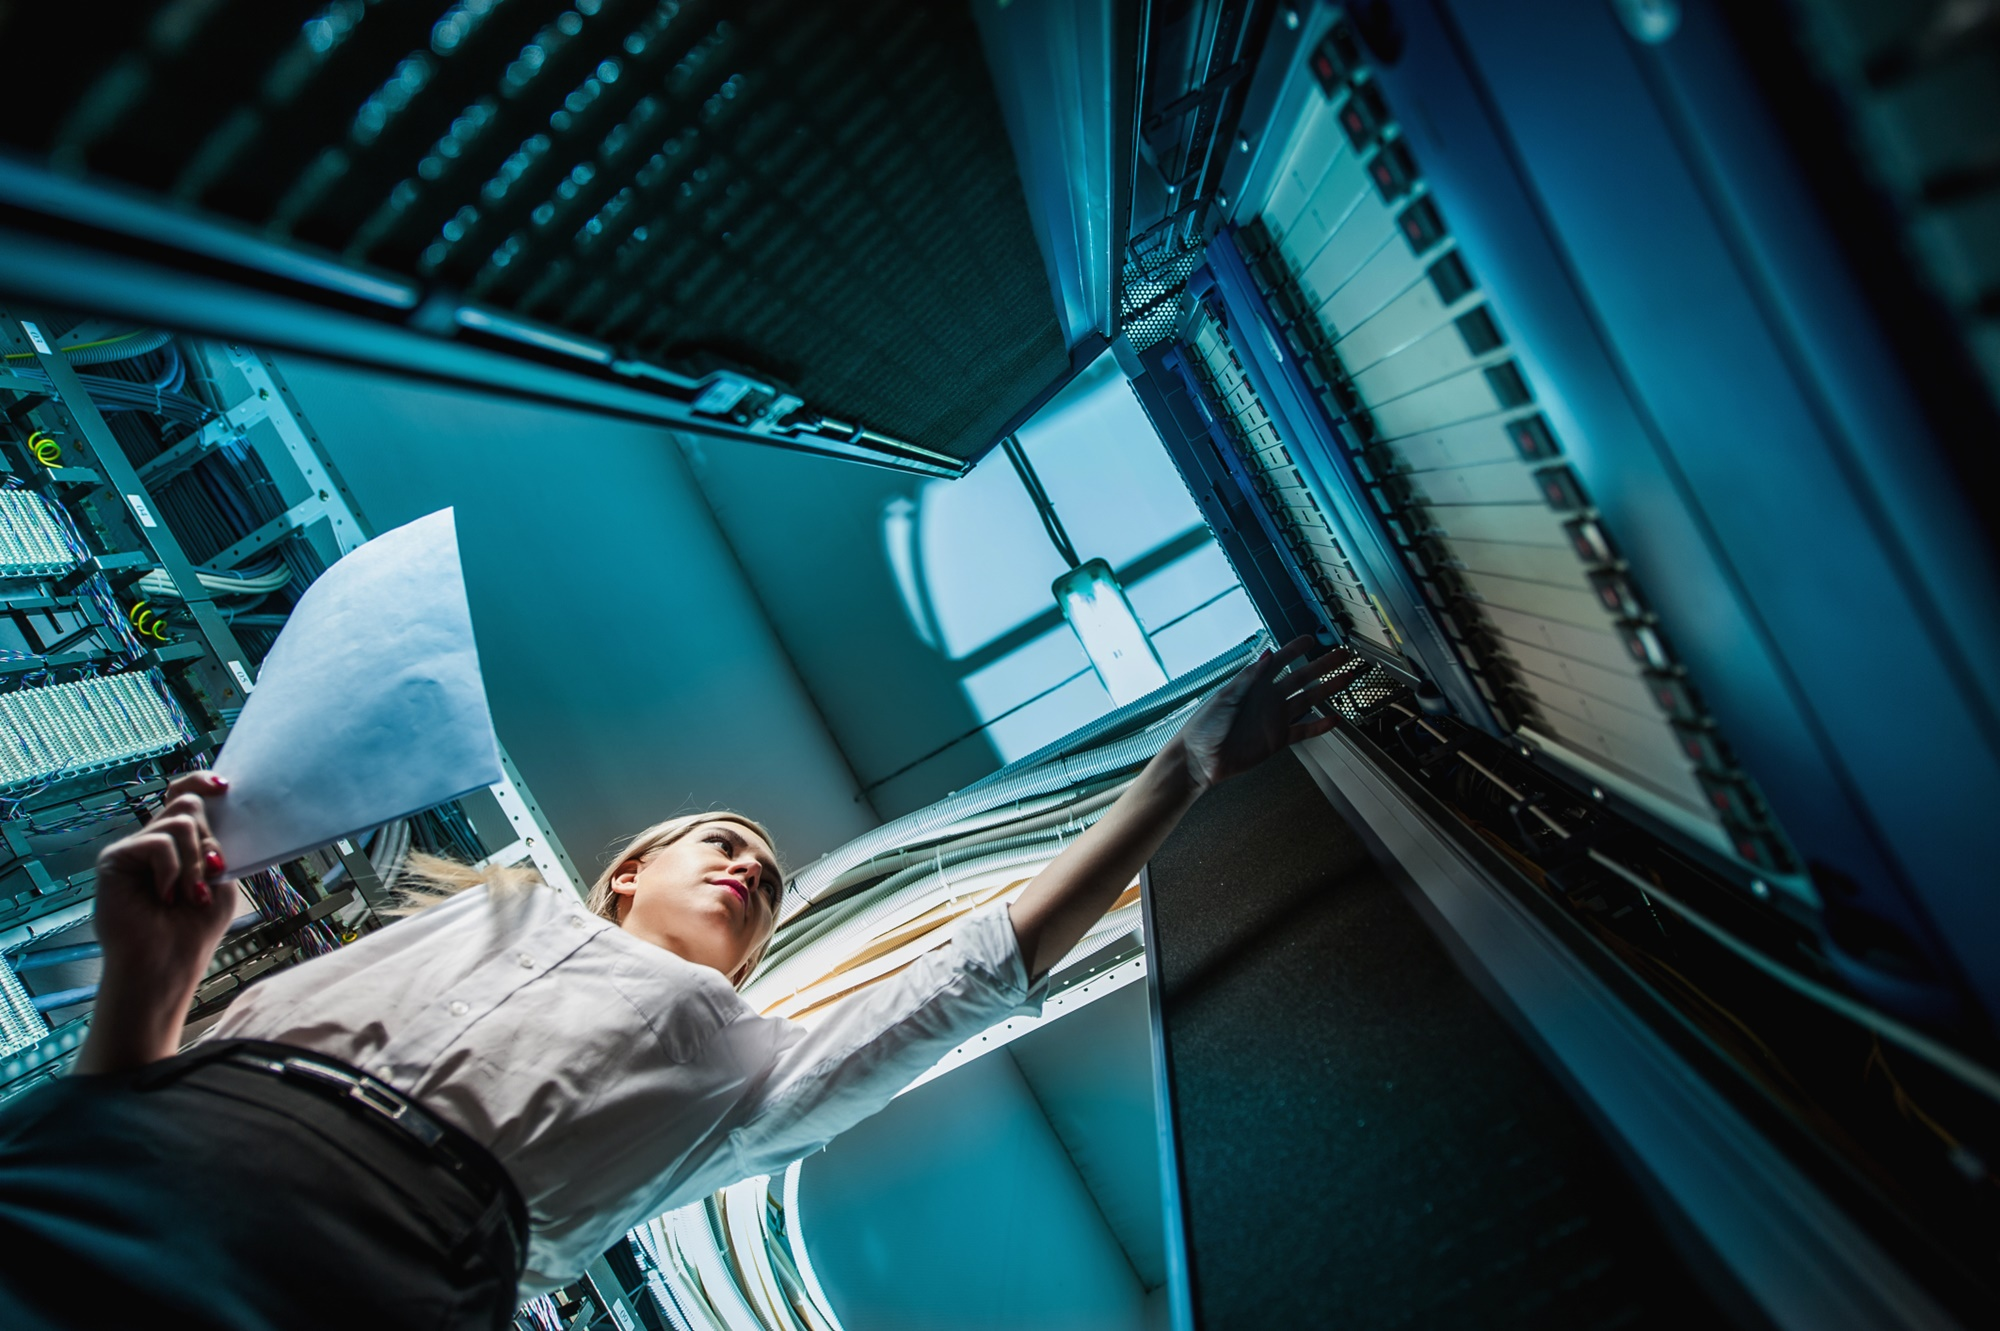 14146_staff-woman-person-in-data-center-people-health-and-safety-ThinkstockPhotos-agnormark